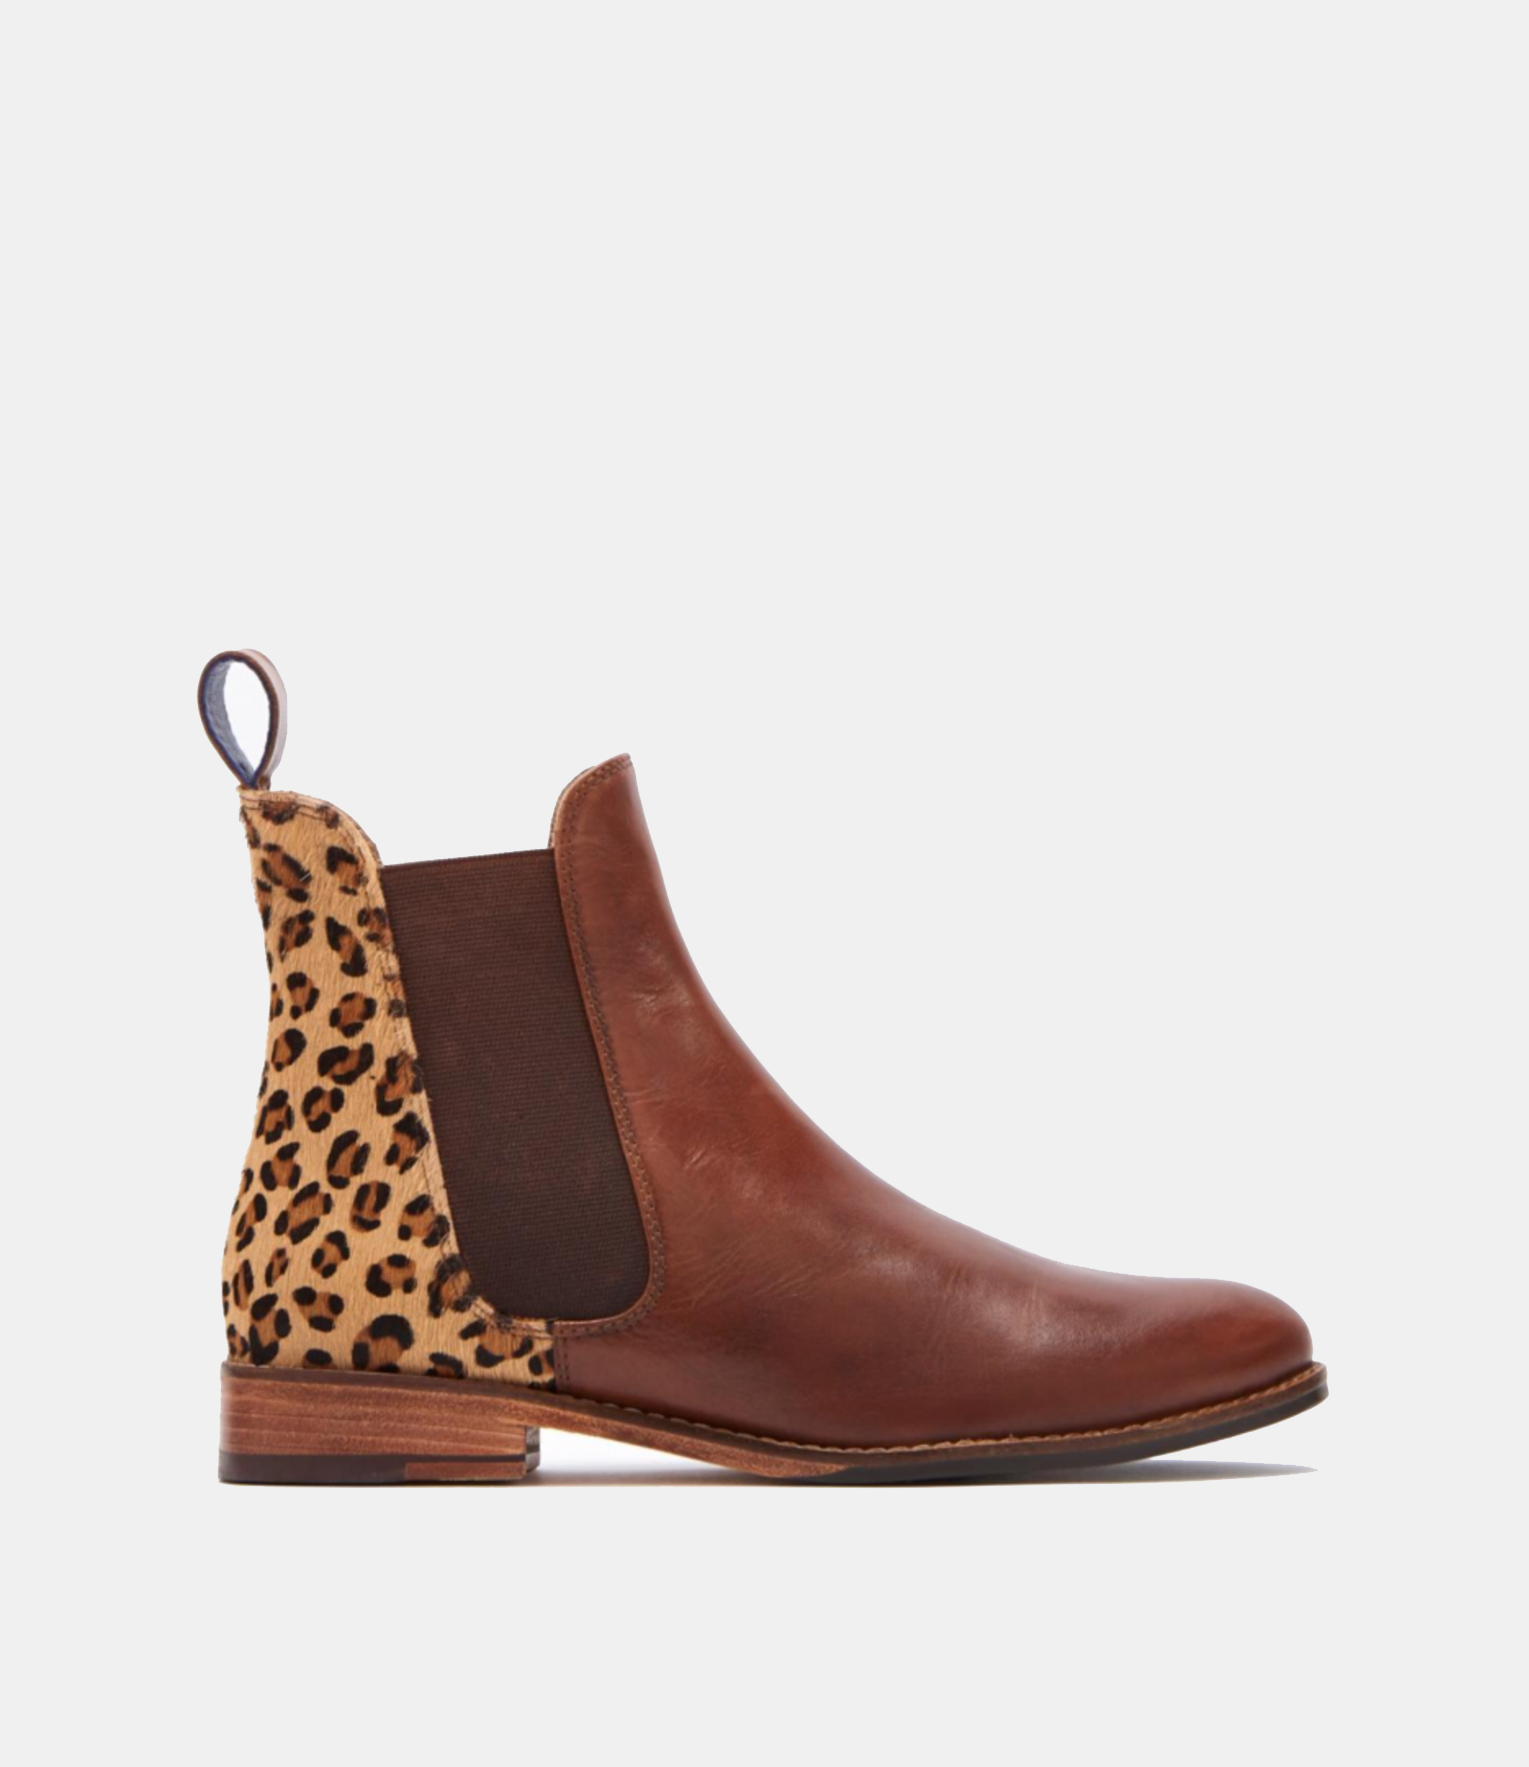 Joules Westbourne Chelsea Ankle Boots Tan Leather Leopard Print